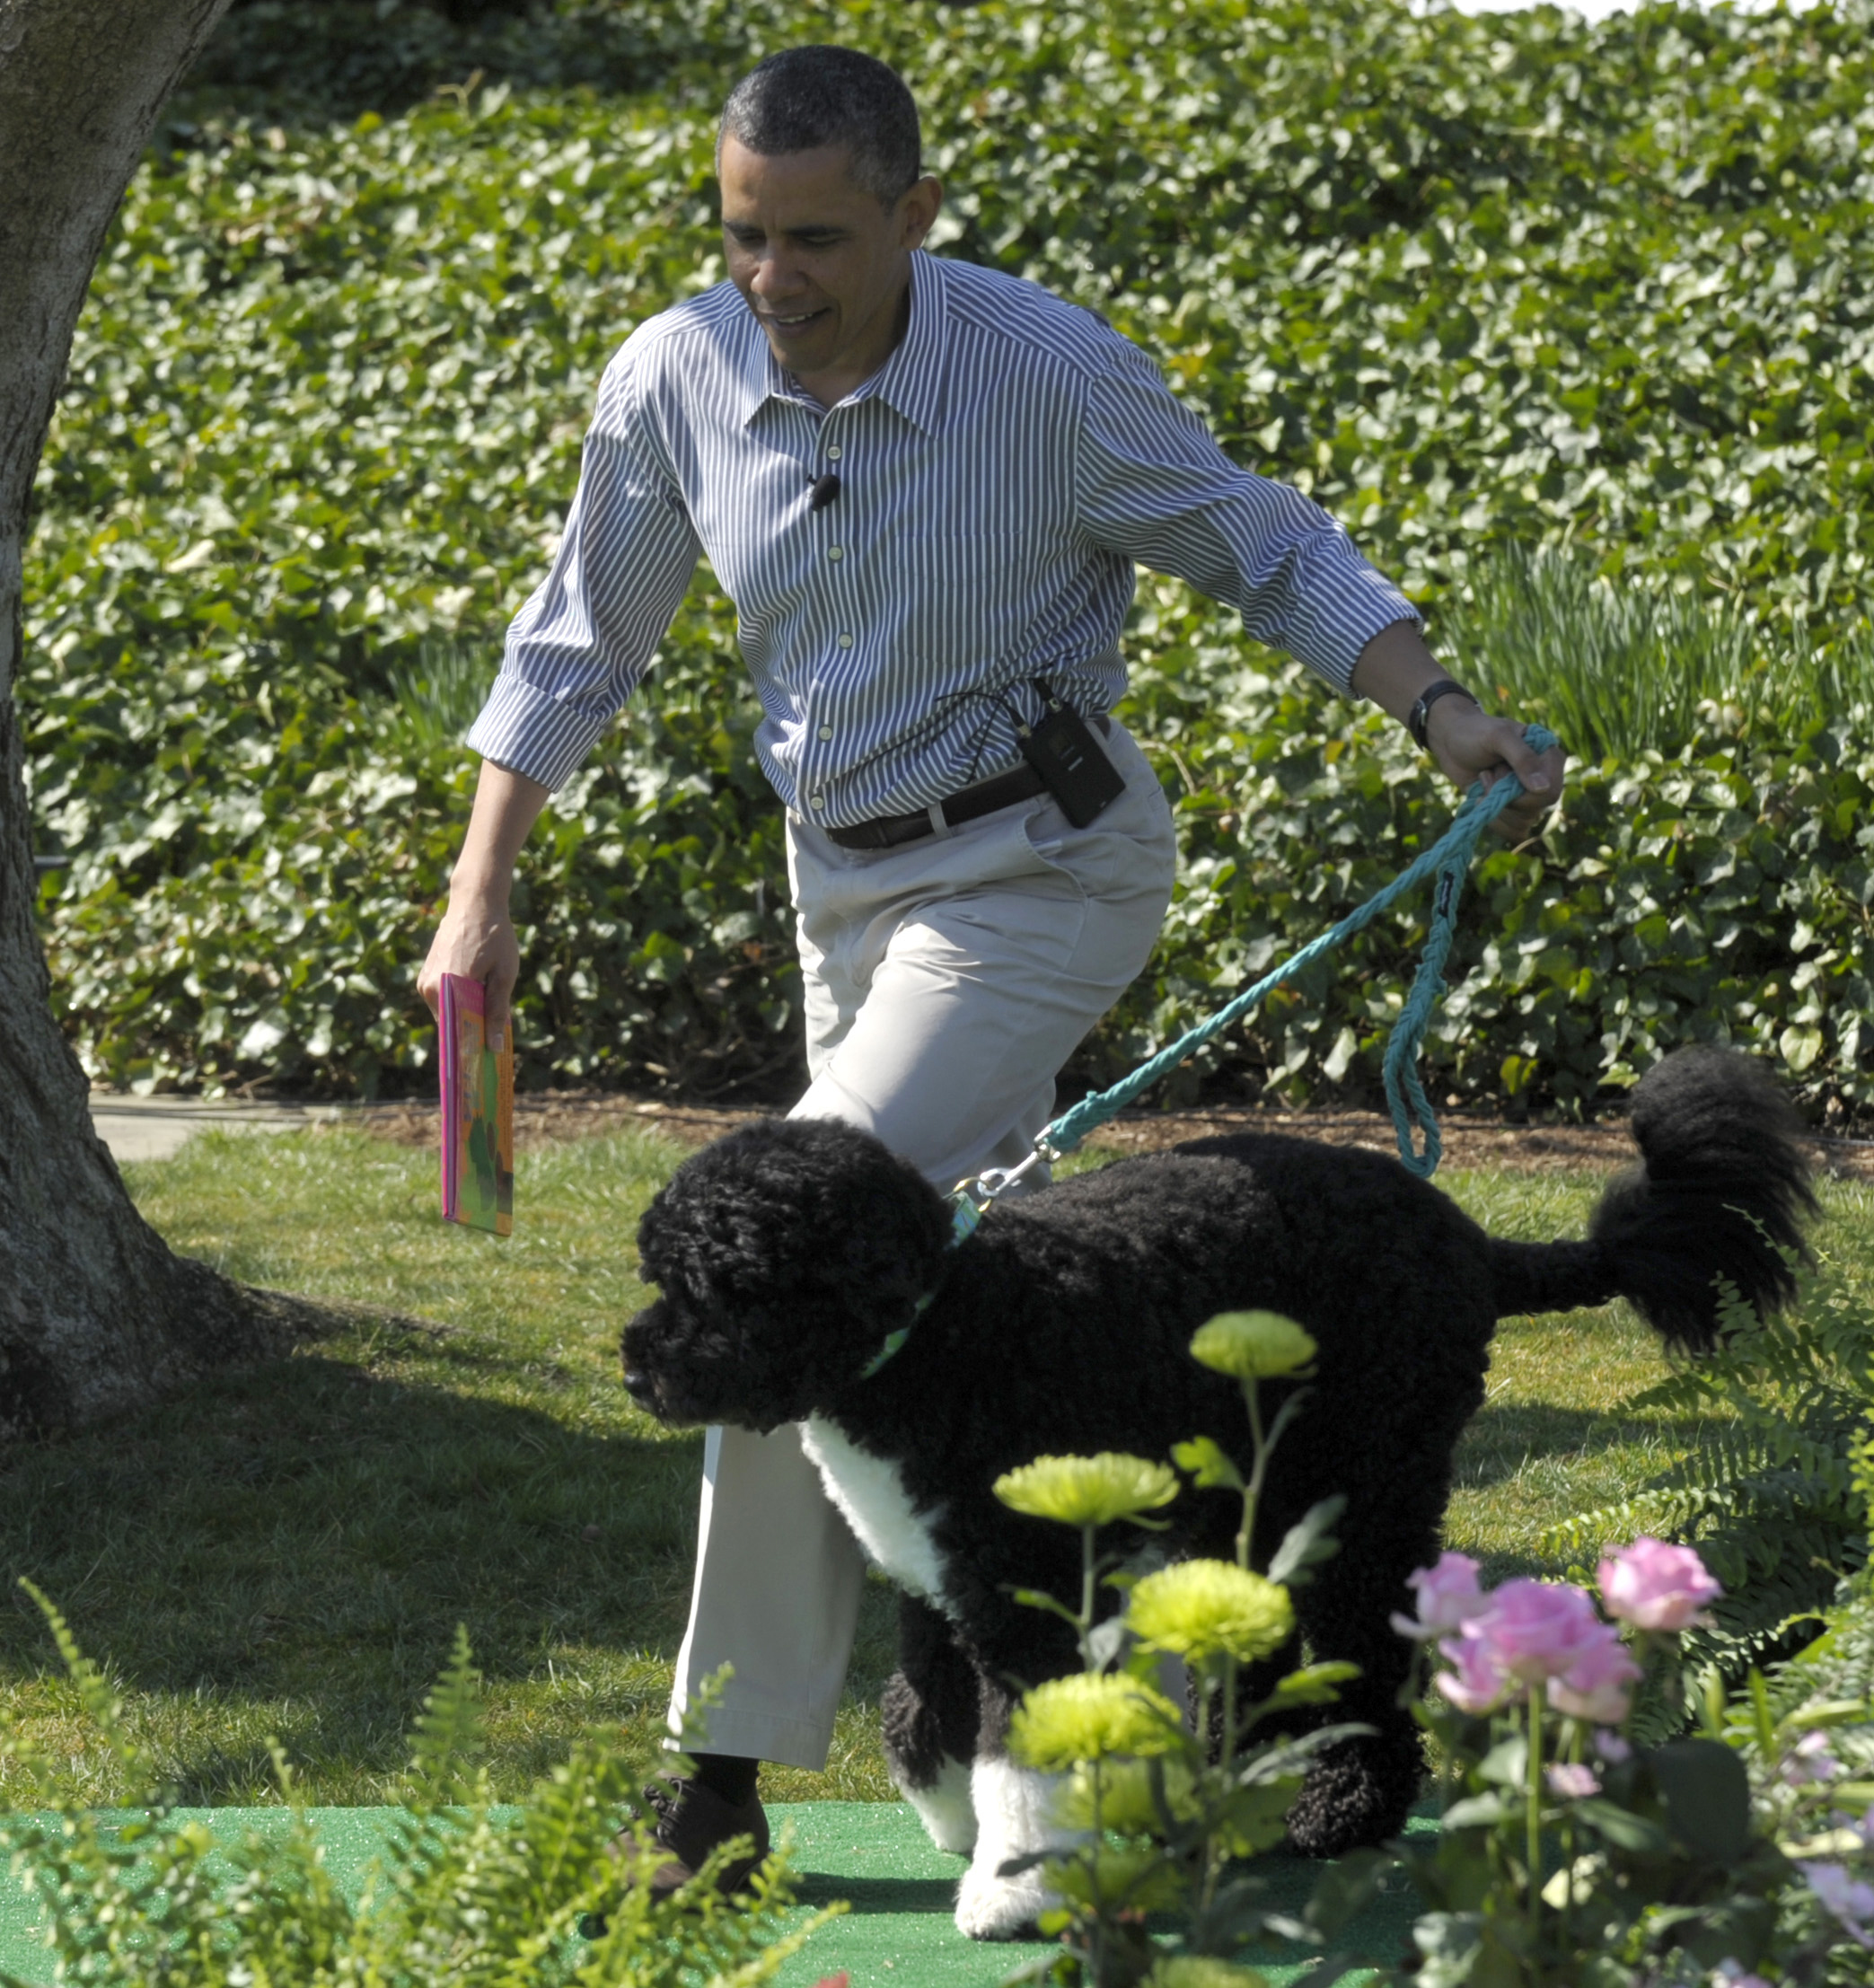 President Barack Obama arrives with his dog Bo, a Portuguese Water Dog, to read Chicka Chicka Boom Boom during activities at the annual Easter Egg Roll on the South Lawn of the White House in Washington, Monday, April 1, 2013. Bo was a present from Ted Kennedy. (AP Photo/Susan Walsh)